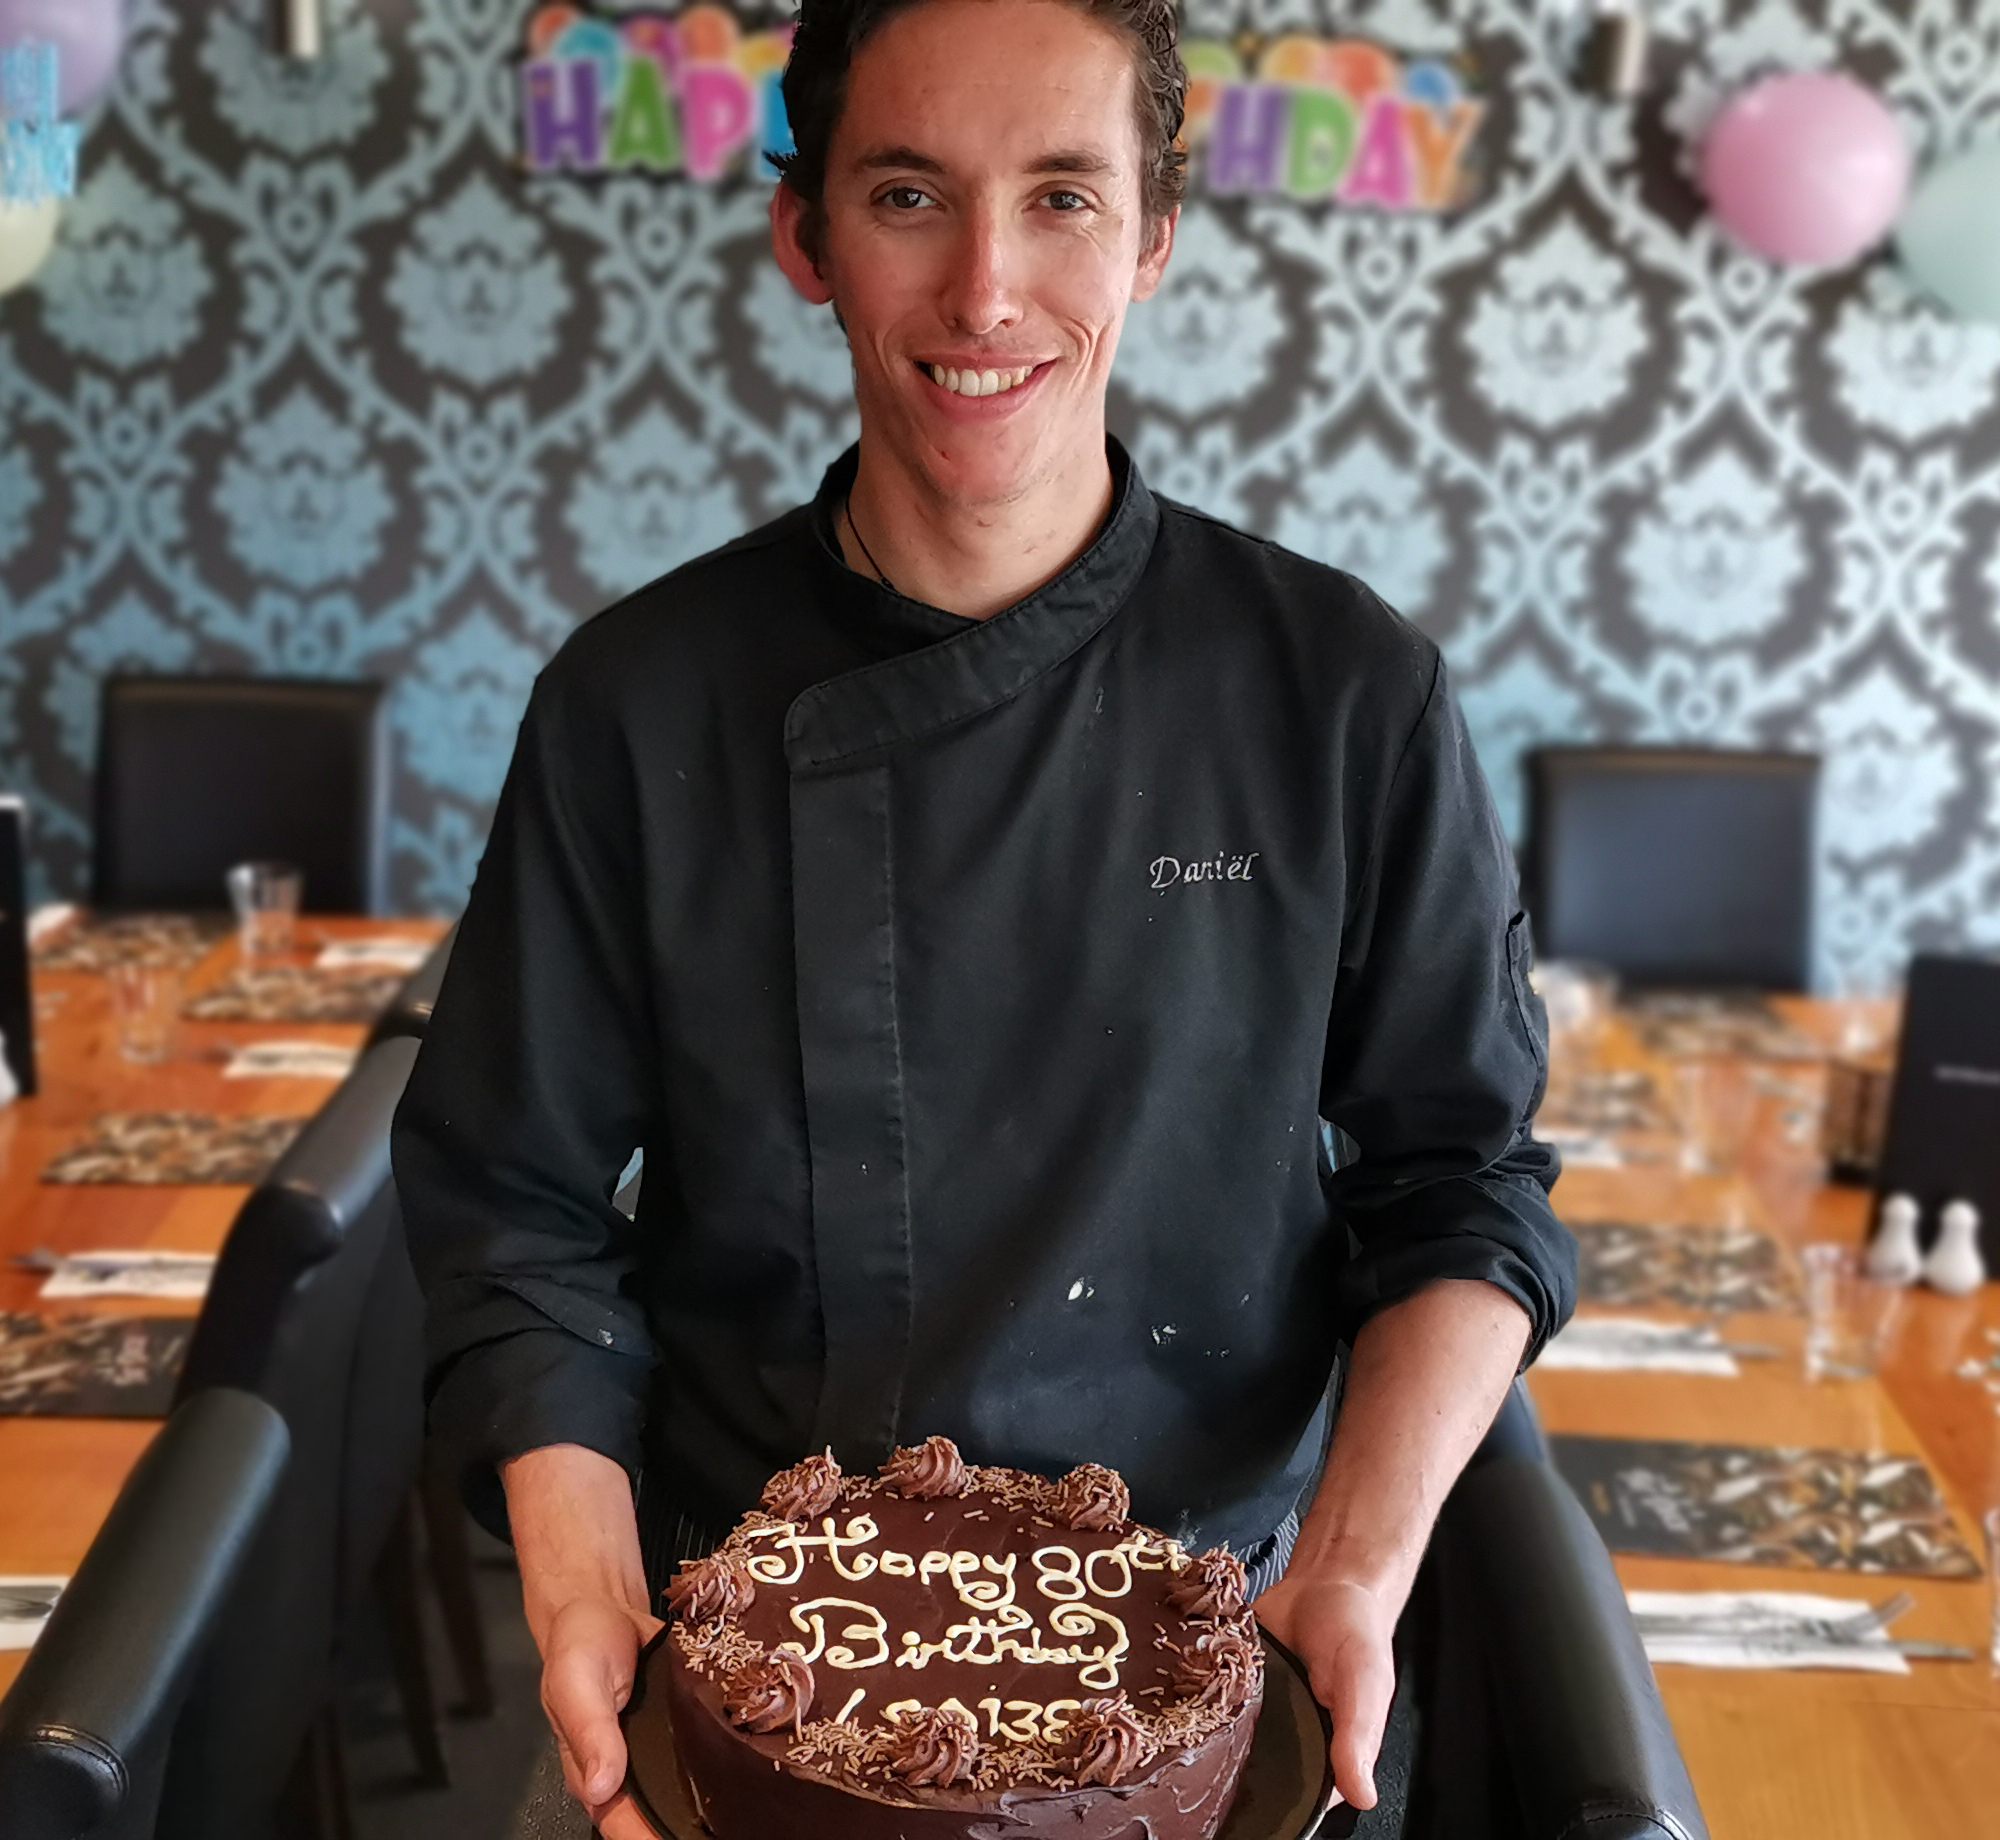 Chef Daniel proudly showing a chocolate cake with 'Happy 80th Birthday' inscribed in icing on the top